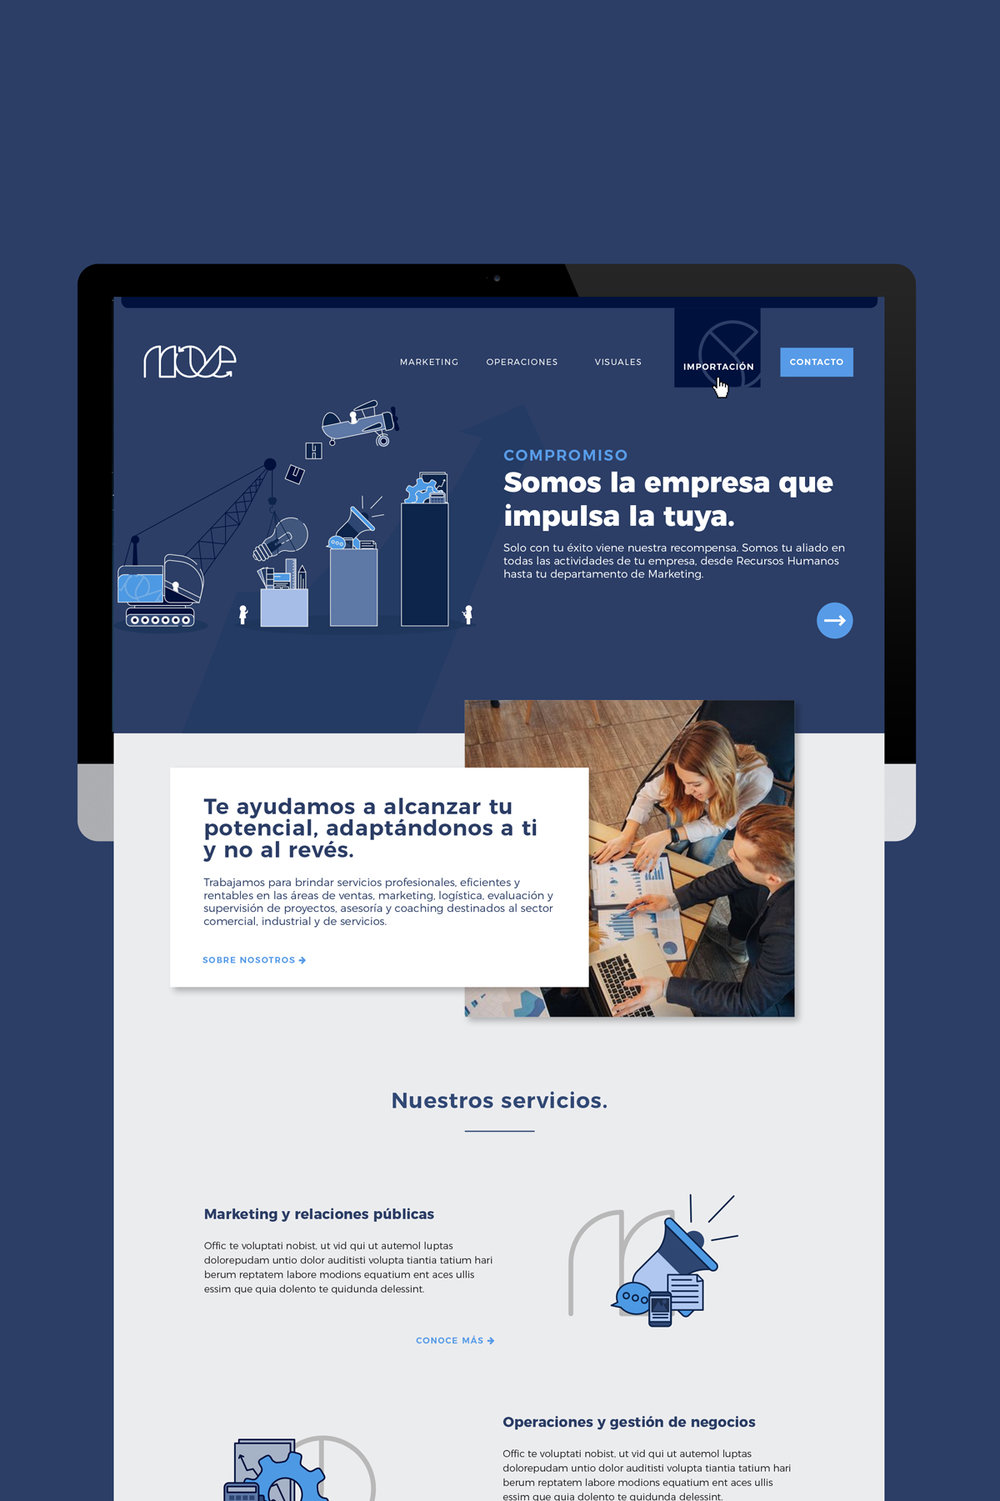 move-web-diseño-webdesign-webflow-santo-domingo-branding.jpg